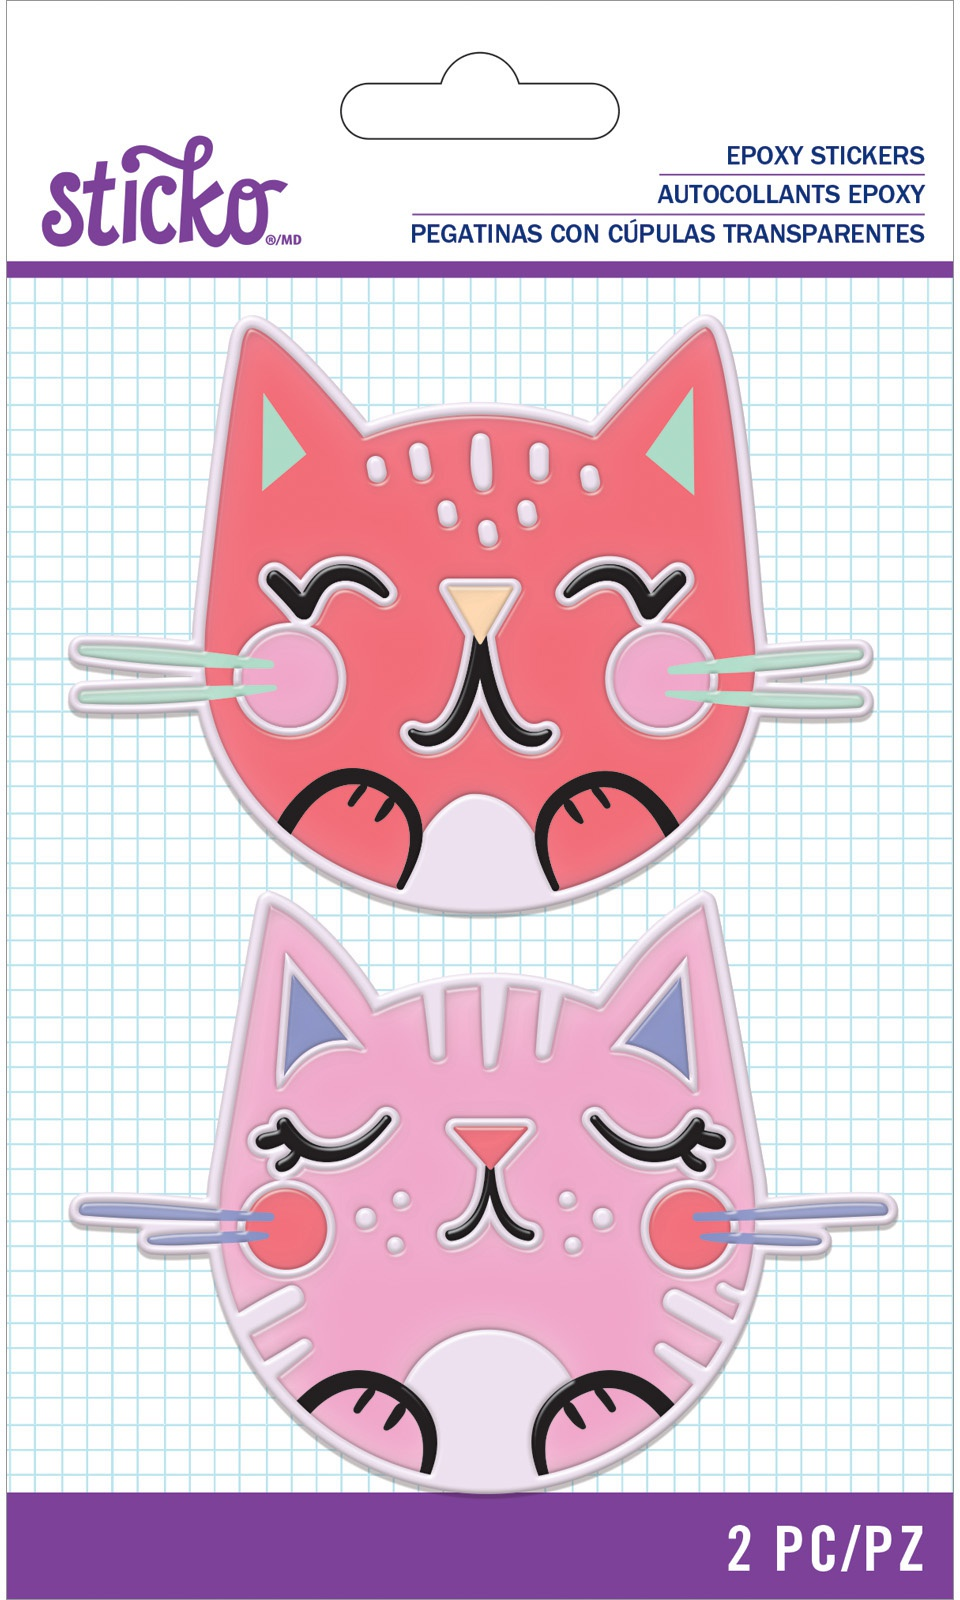 Sticko Raised Channel Epoxy Stickers-Doodle Cat Faces